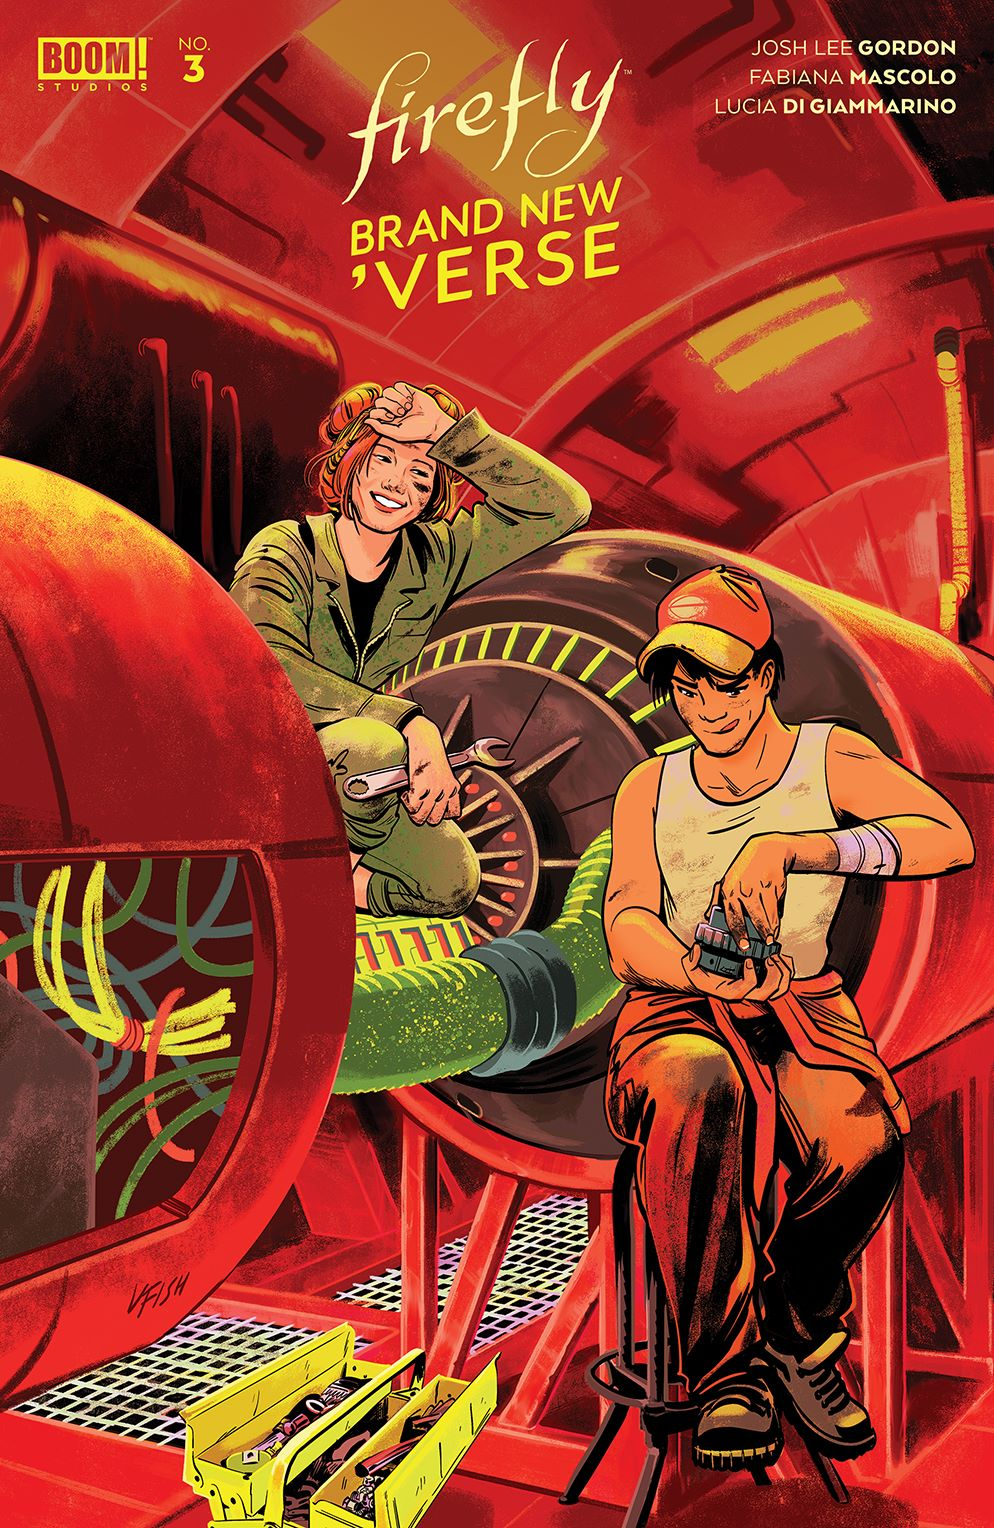 Firefly_BrandNewVerse_003_Cover_B_Generations ComicList Previews: FIREFLY A BRAND NEW 'VERSE #3 (OF 6)